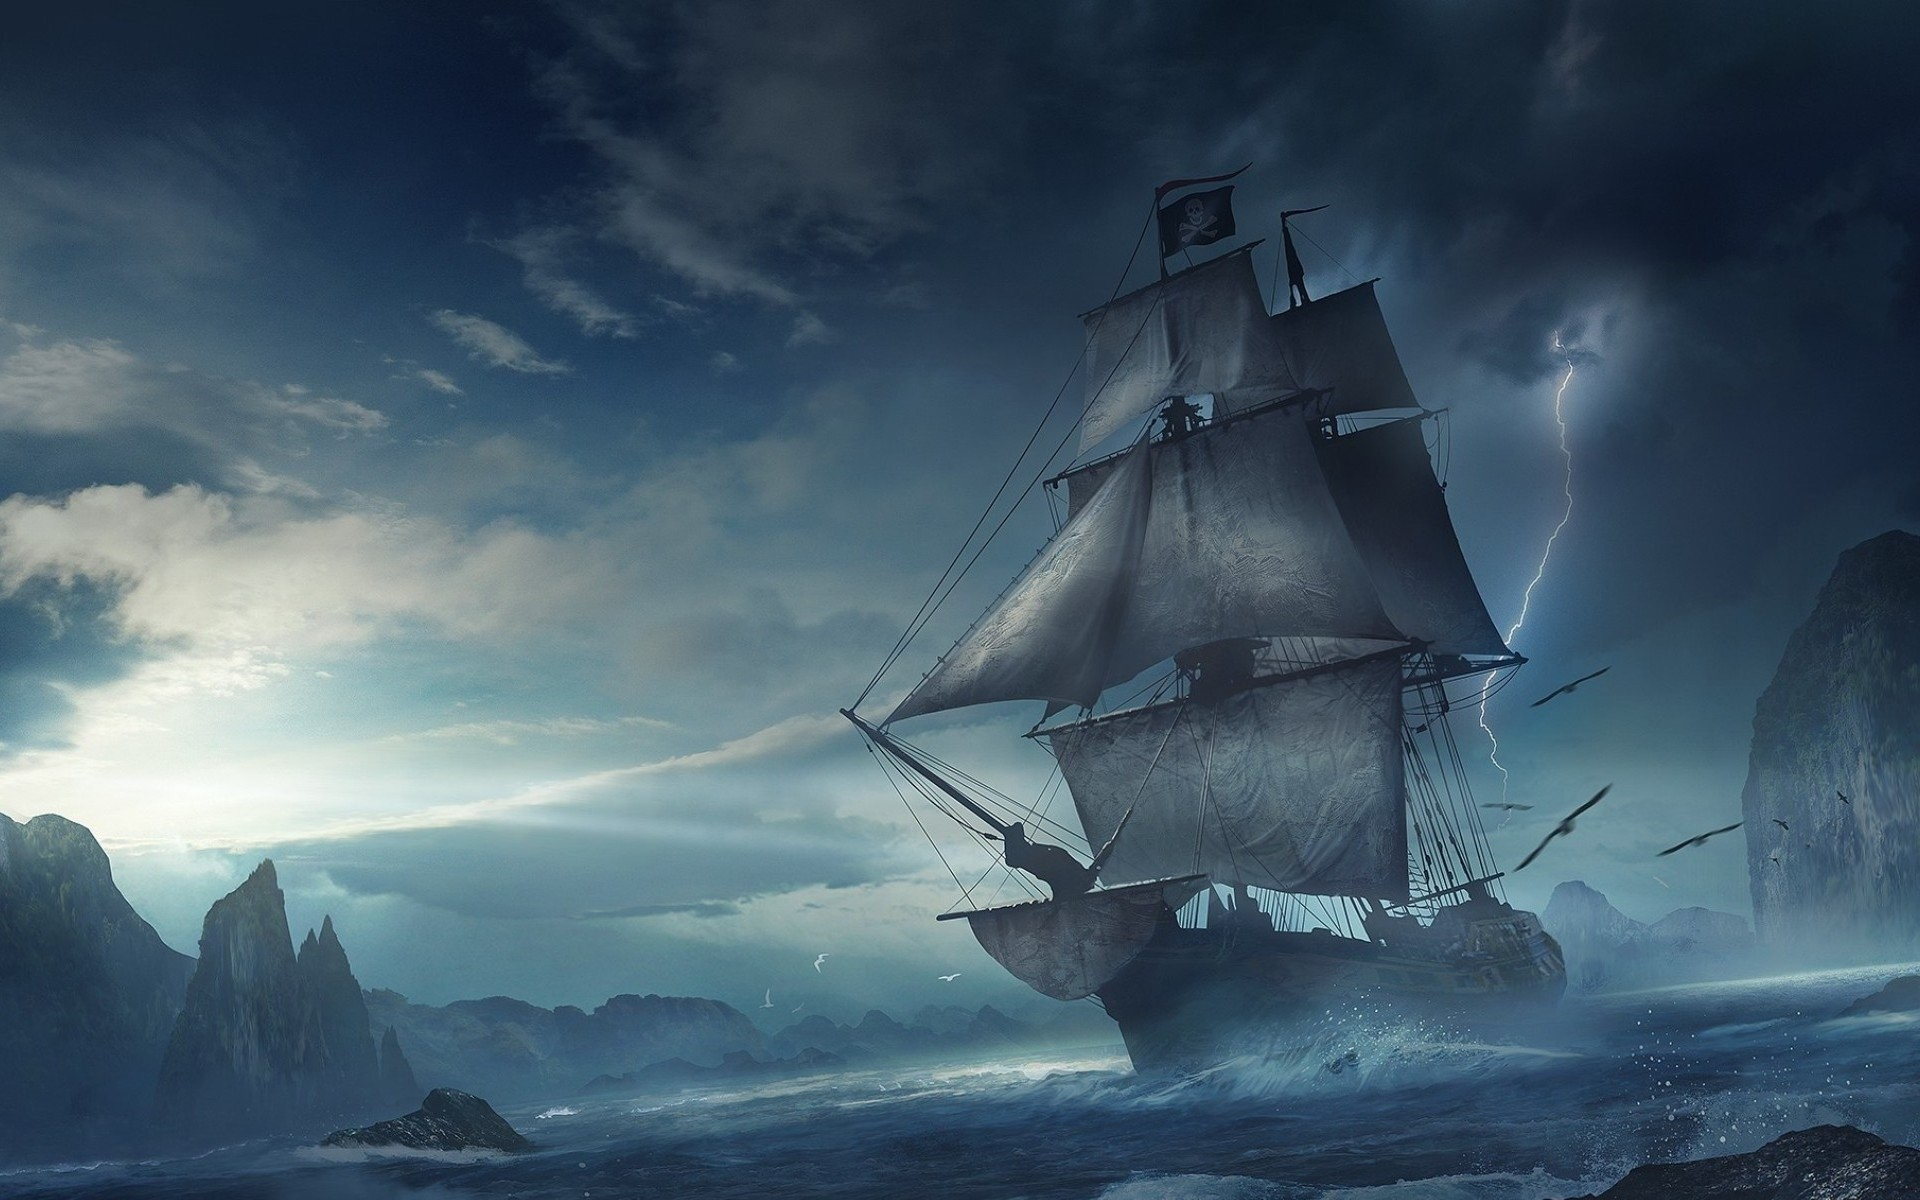 1920x1200 Pirate Ship Deck Wallpaper | HD Wallpapers | Pinterest | Pirate ships and  Wallpaper